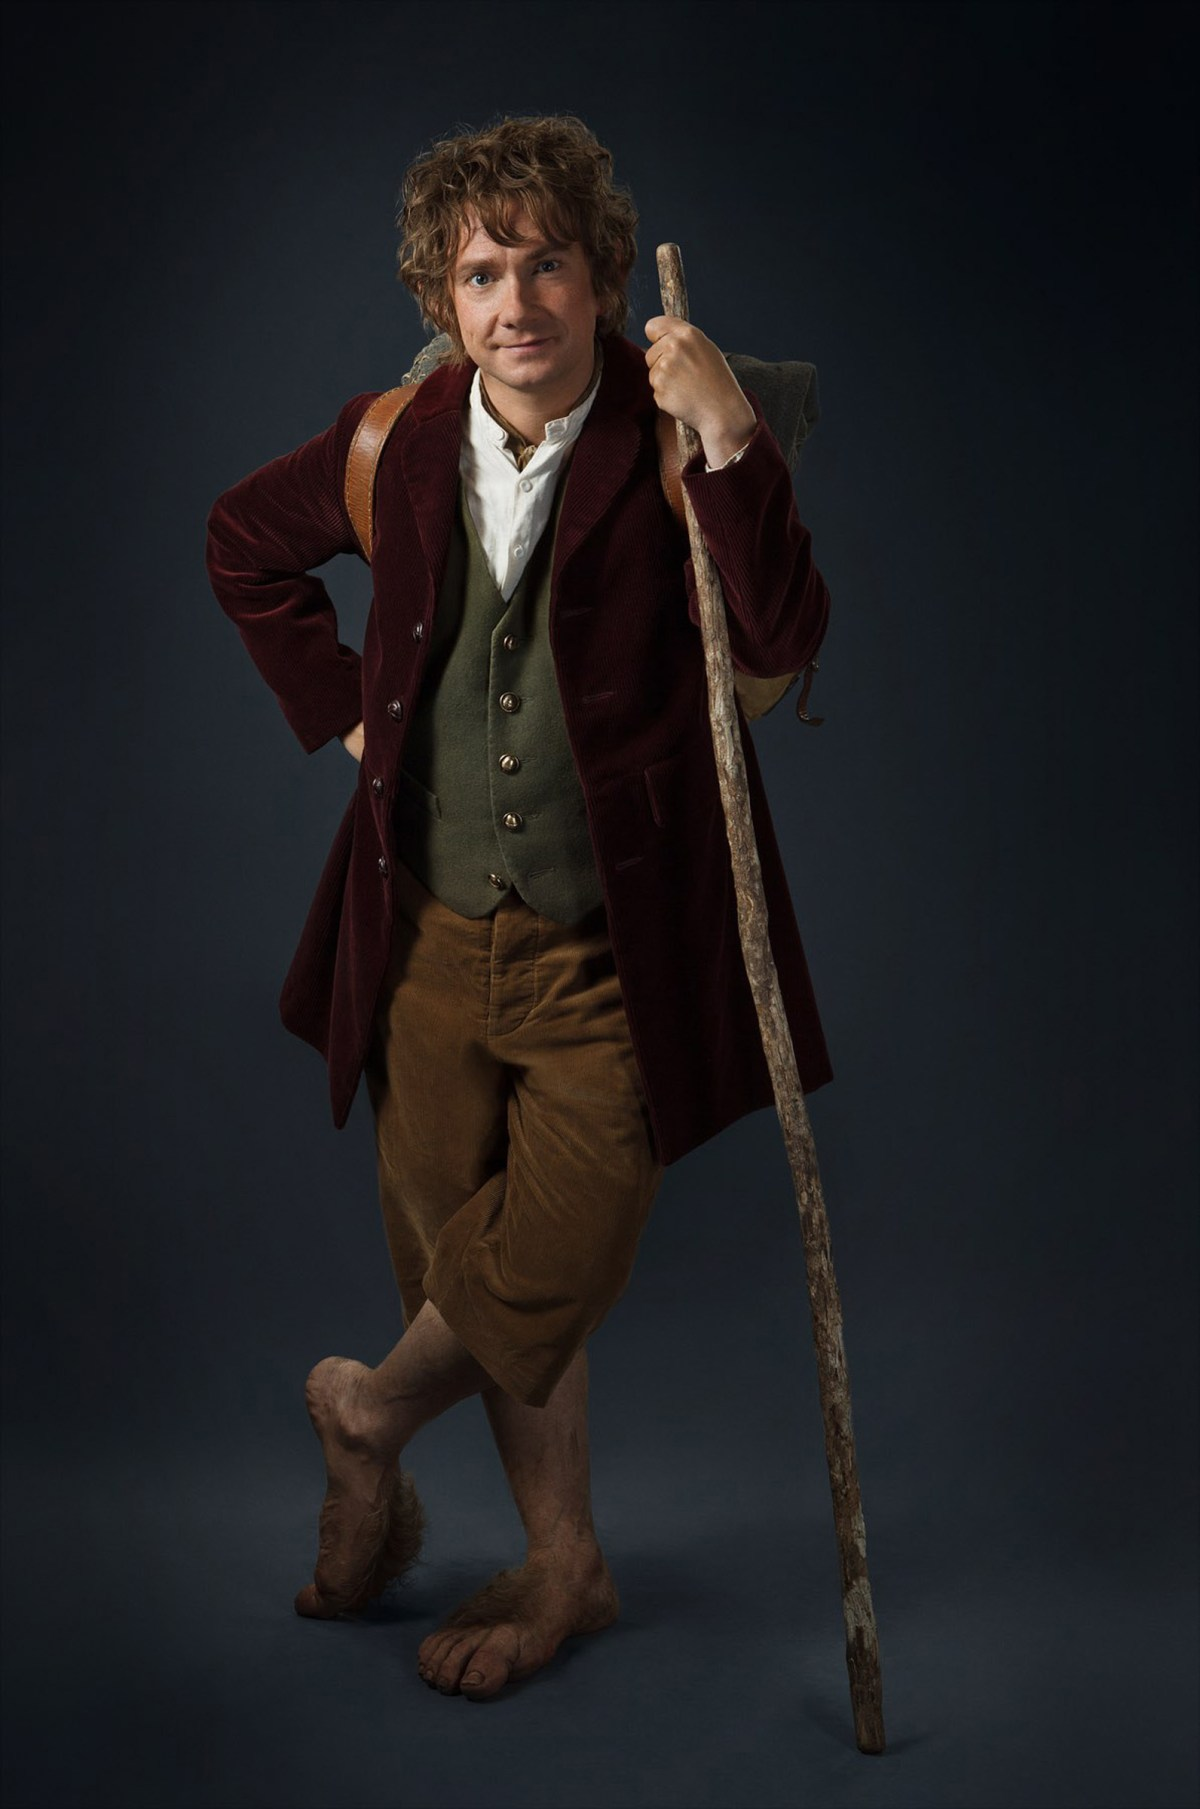 A promotional shot of actor Martin Freeman as Bilbo Baggins, wearing short brown trousers, a green vest, and a burgundy blazer. He leans on a walking stick with a hand on one hip.